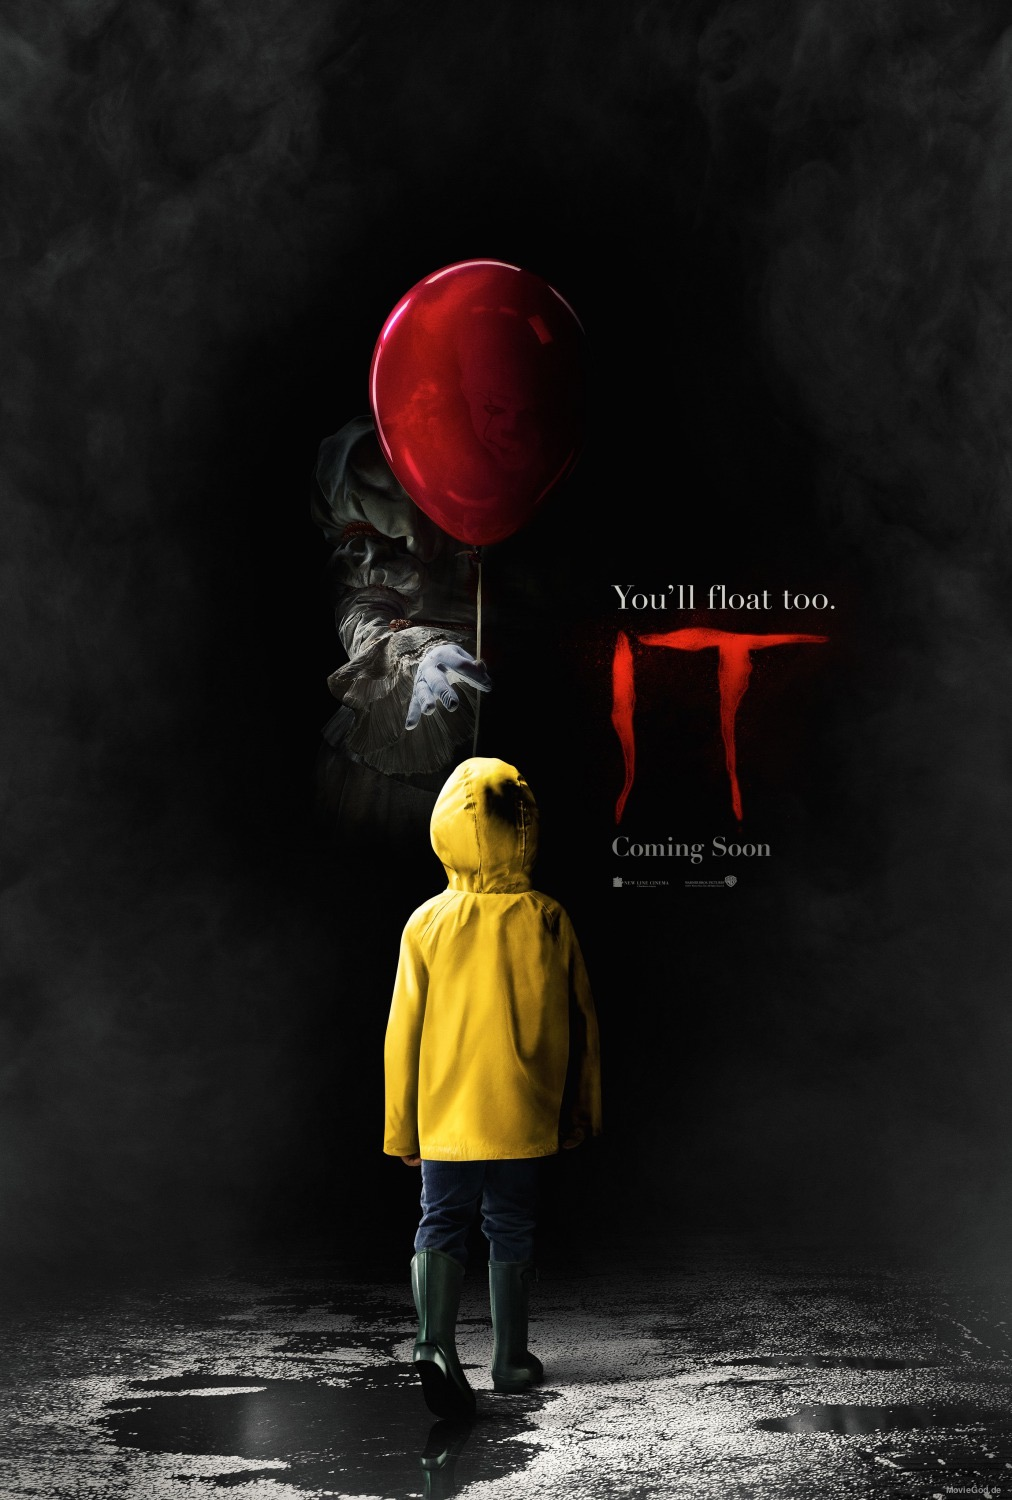 29032017_IT_trailer_poster